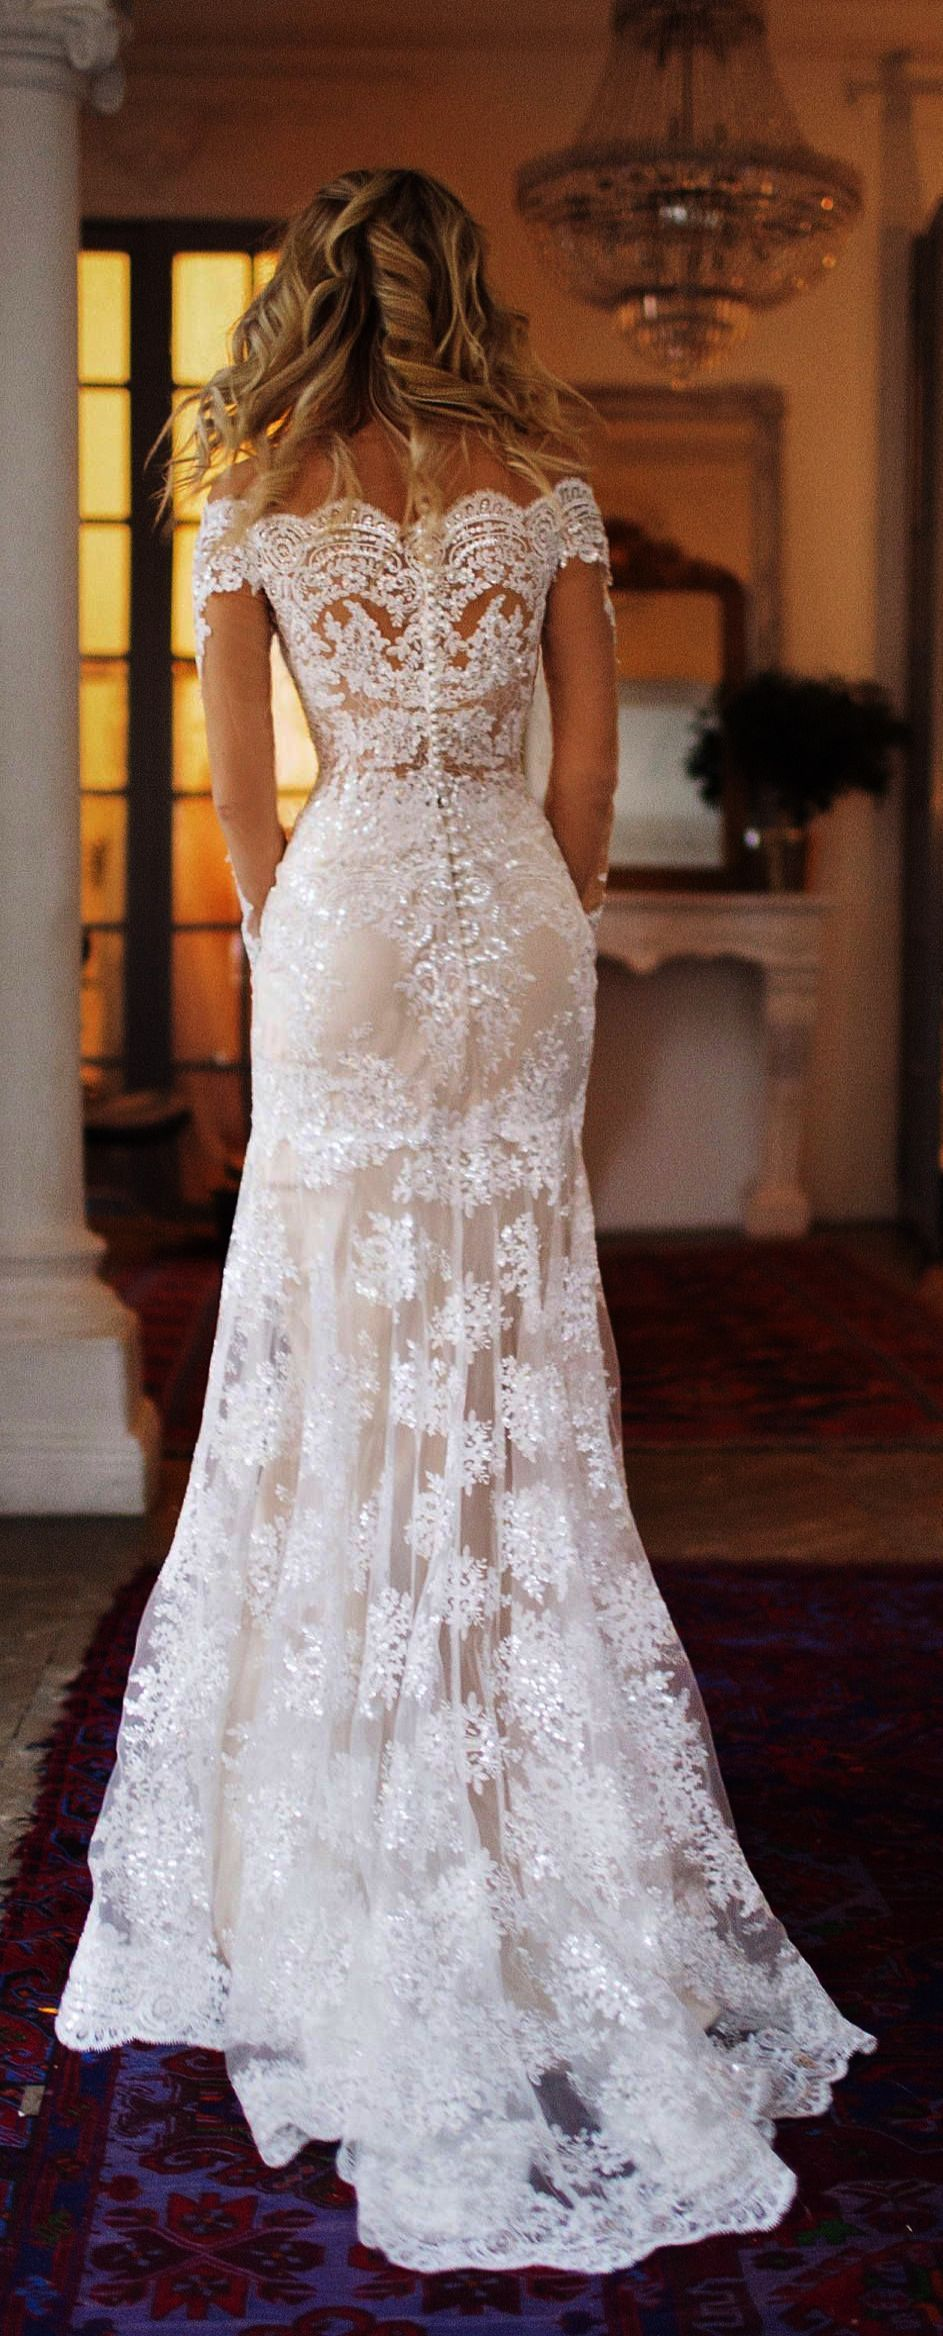 Wedding dresses mermaid style lace  Lace Wedding Dresses Mermaid Style Lace Wedding Dresses For Pregnant